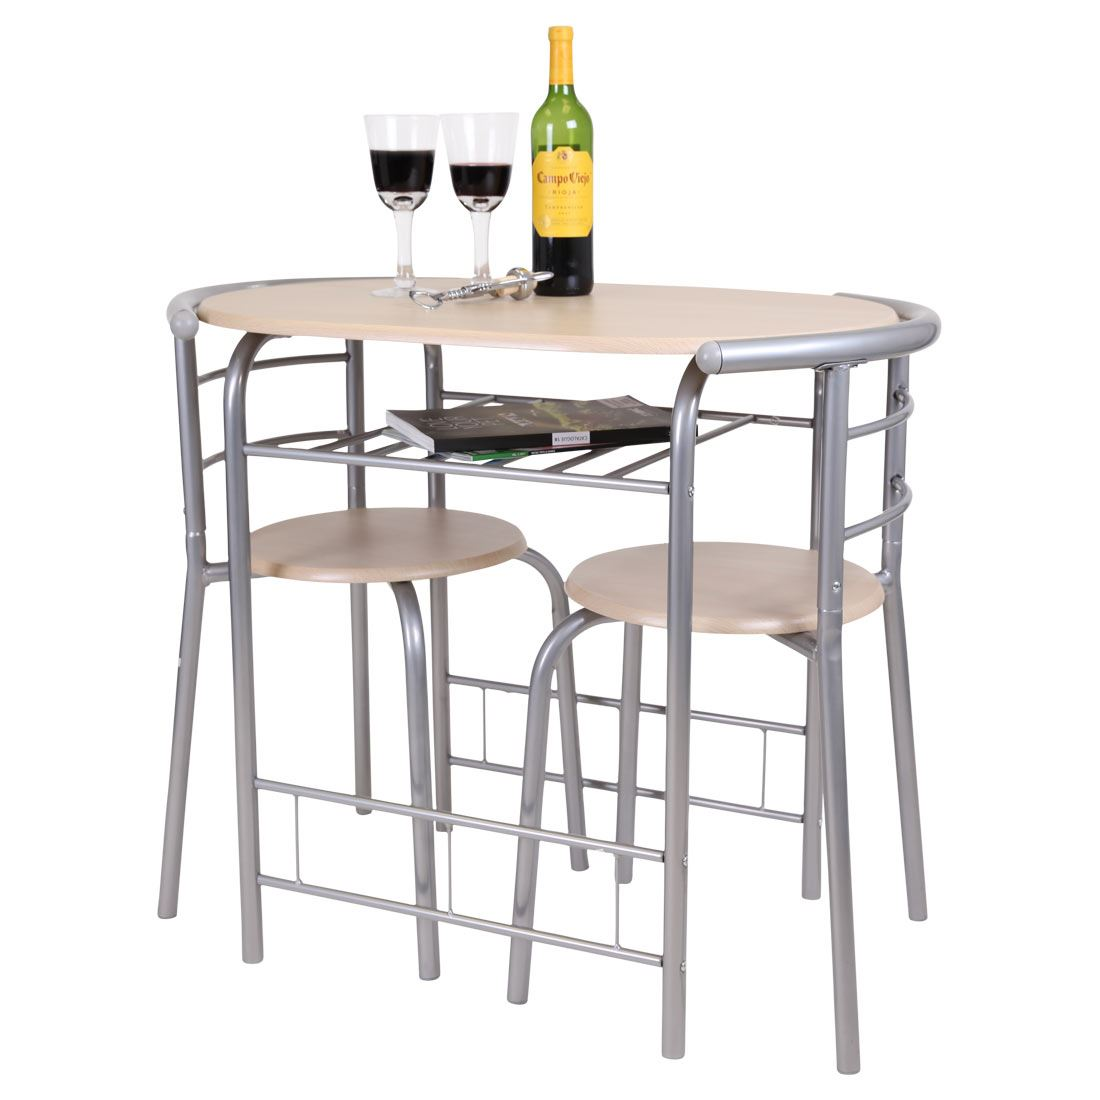 Kitchen Bistro Set: CHICAGO 3 PIECE DINING TABLE AND 2 CHAIR SET. BREAKFAST